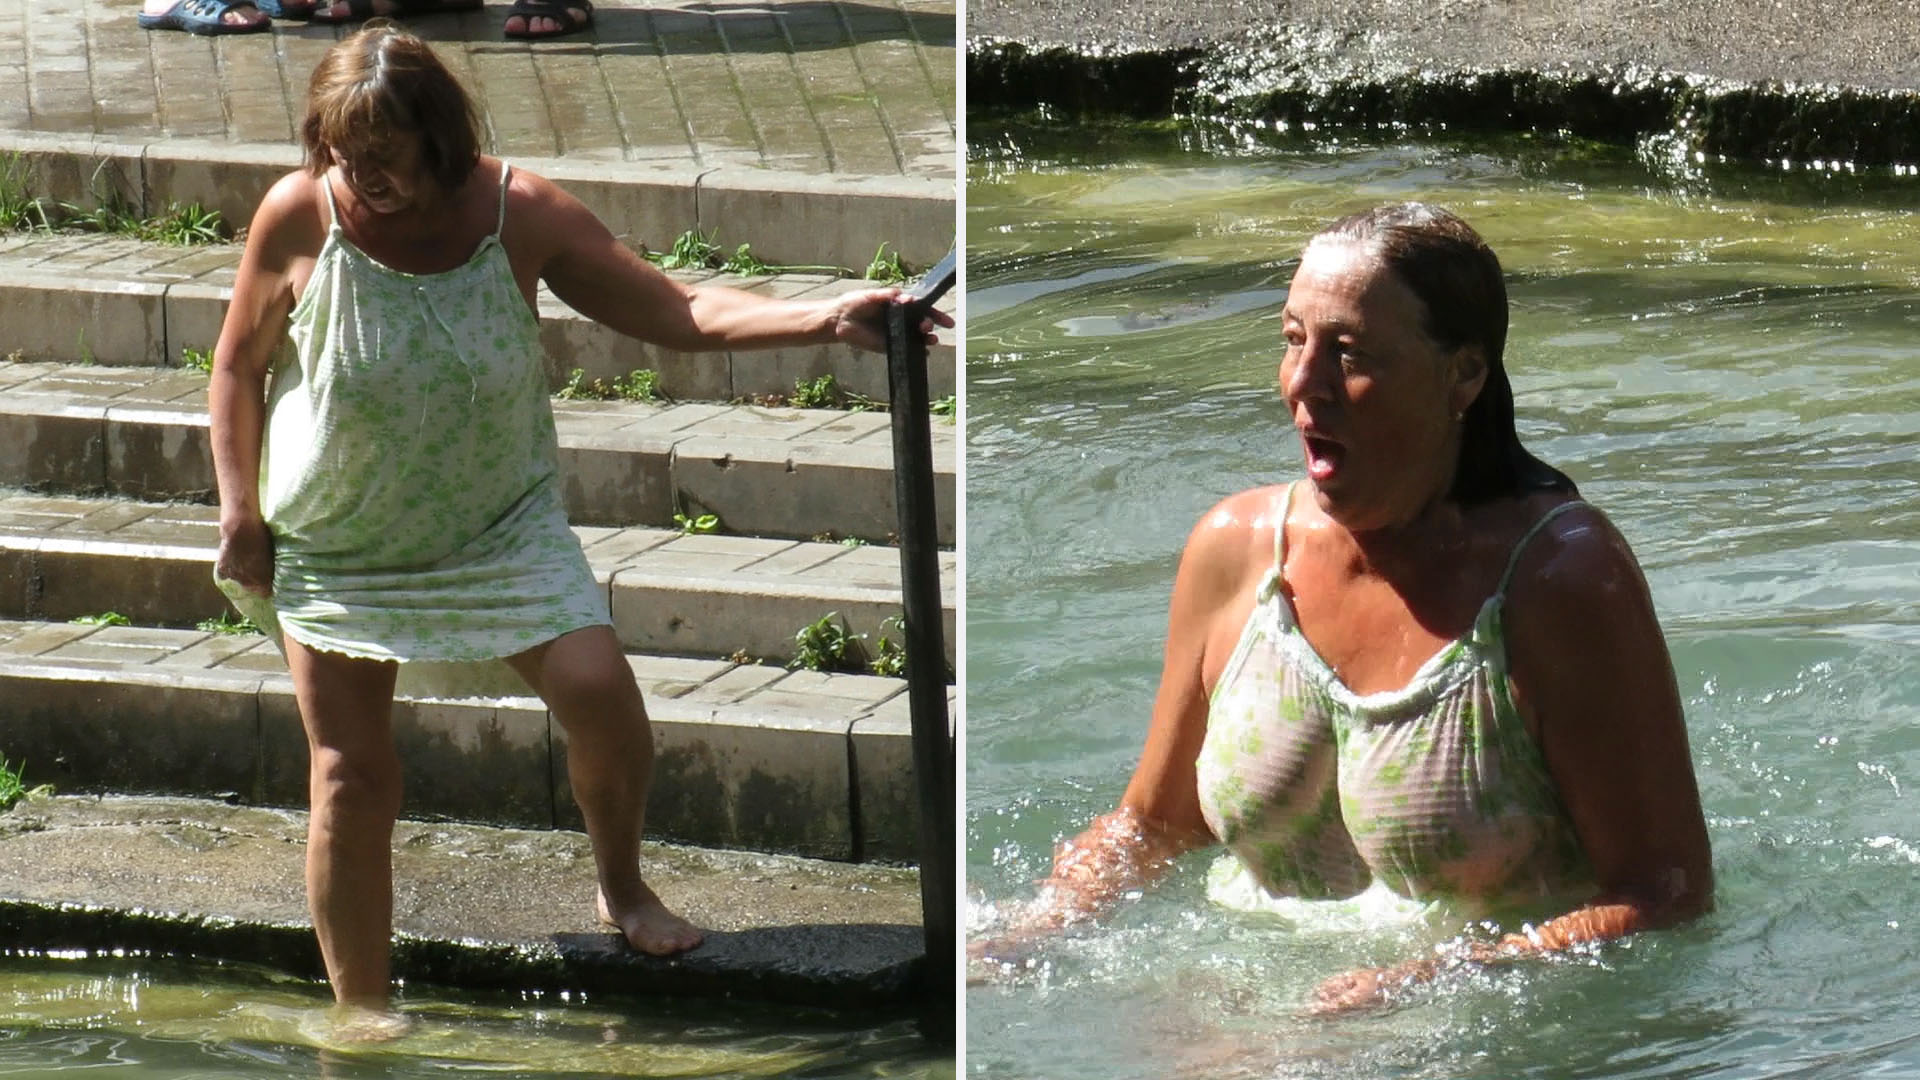 Woman plinges into water and shows boobs